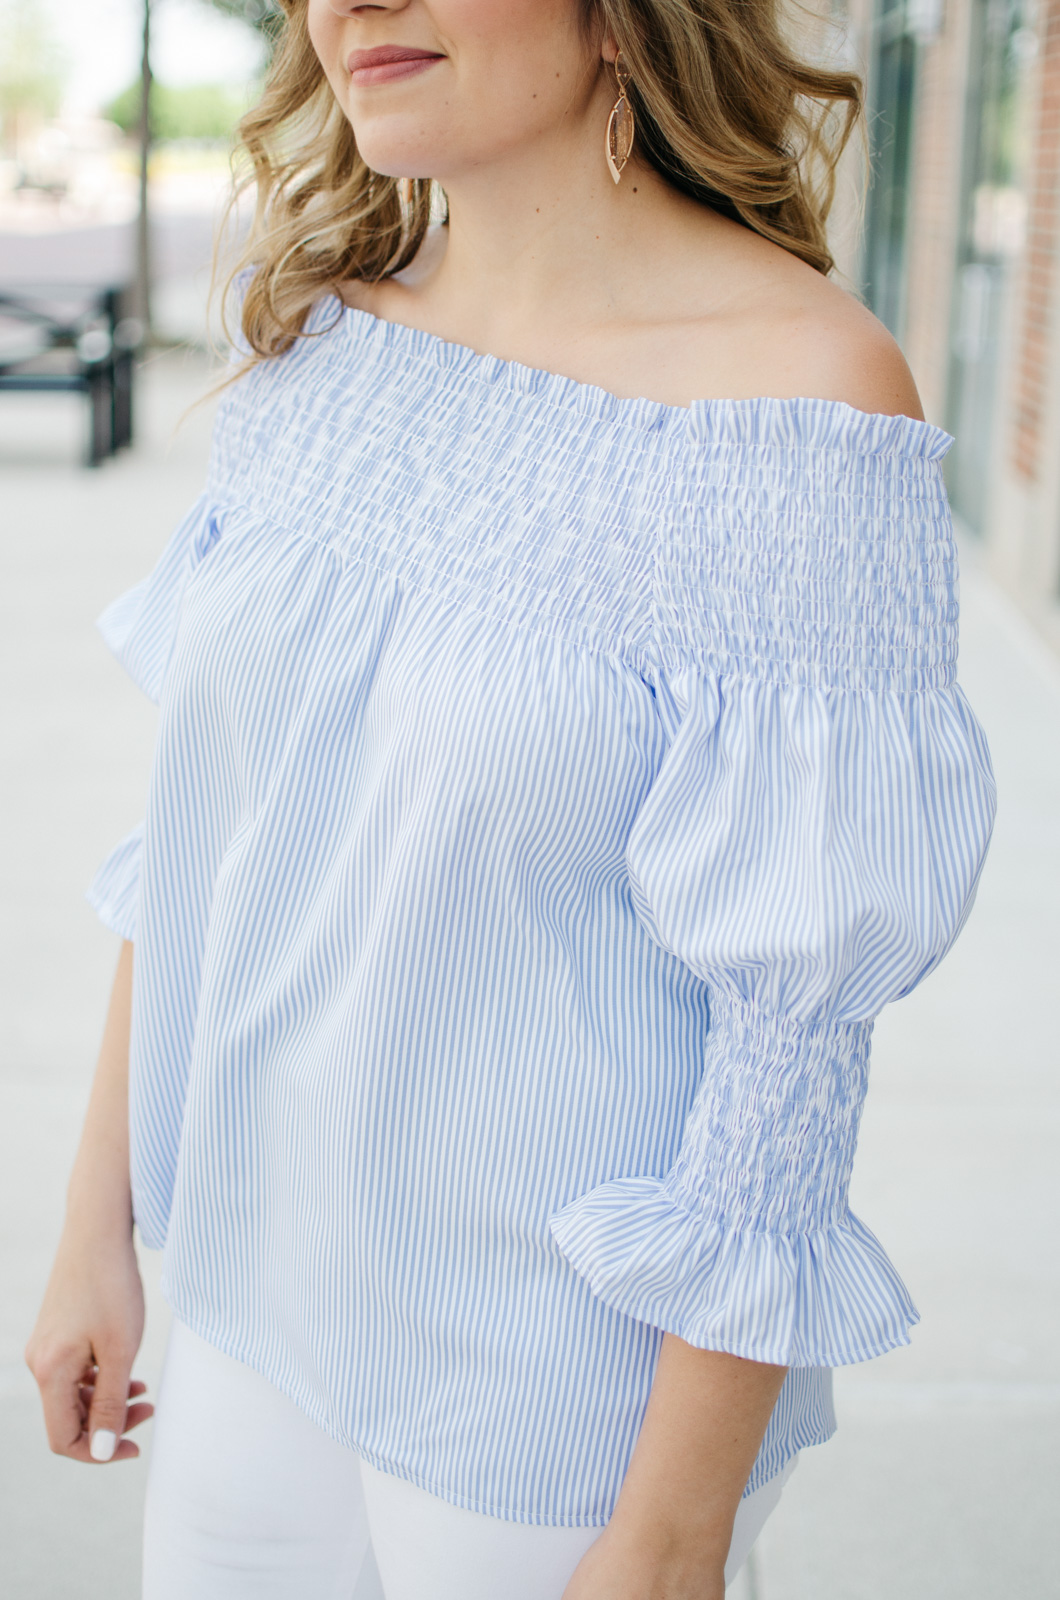 spring style - off shoulder outfit | Want more Spring outfit inspiration? Head to bylaurenm.com!